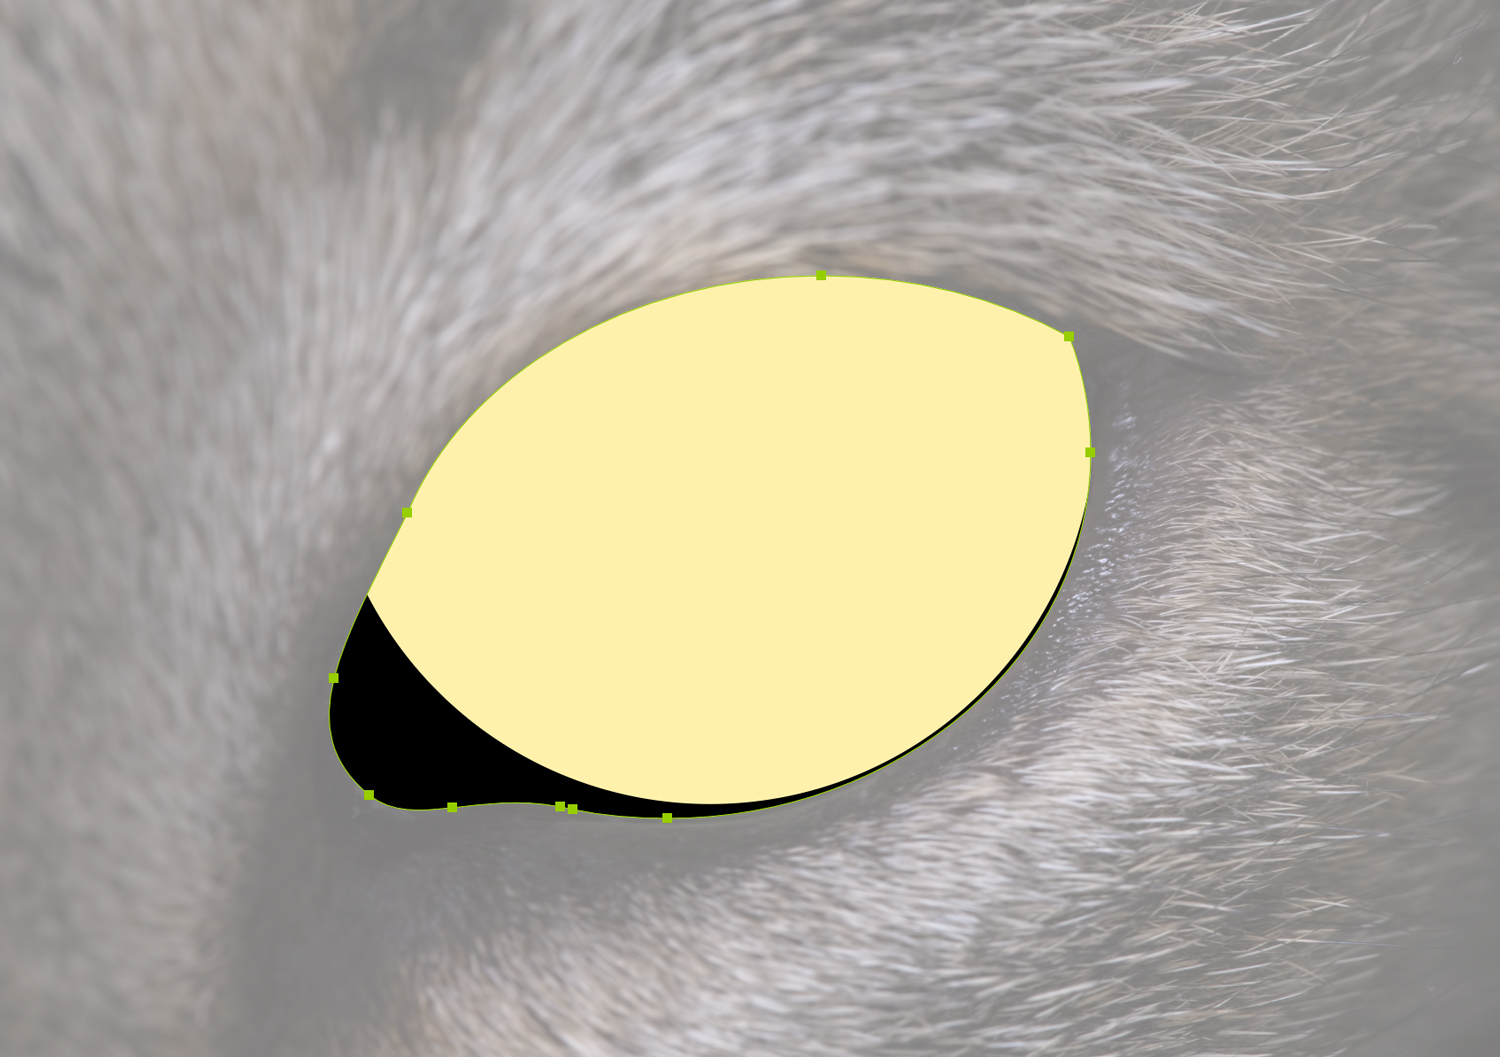 A yellow circle inside a black cat eye shape in Illustrator